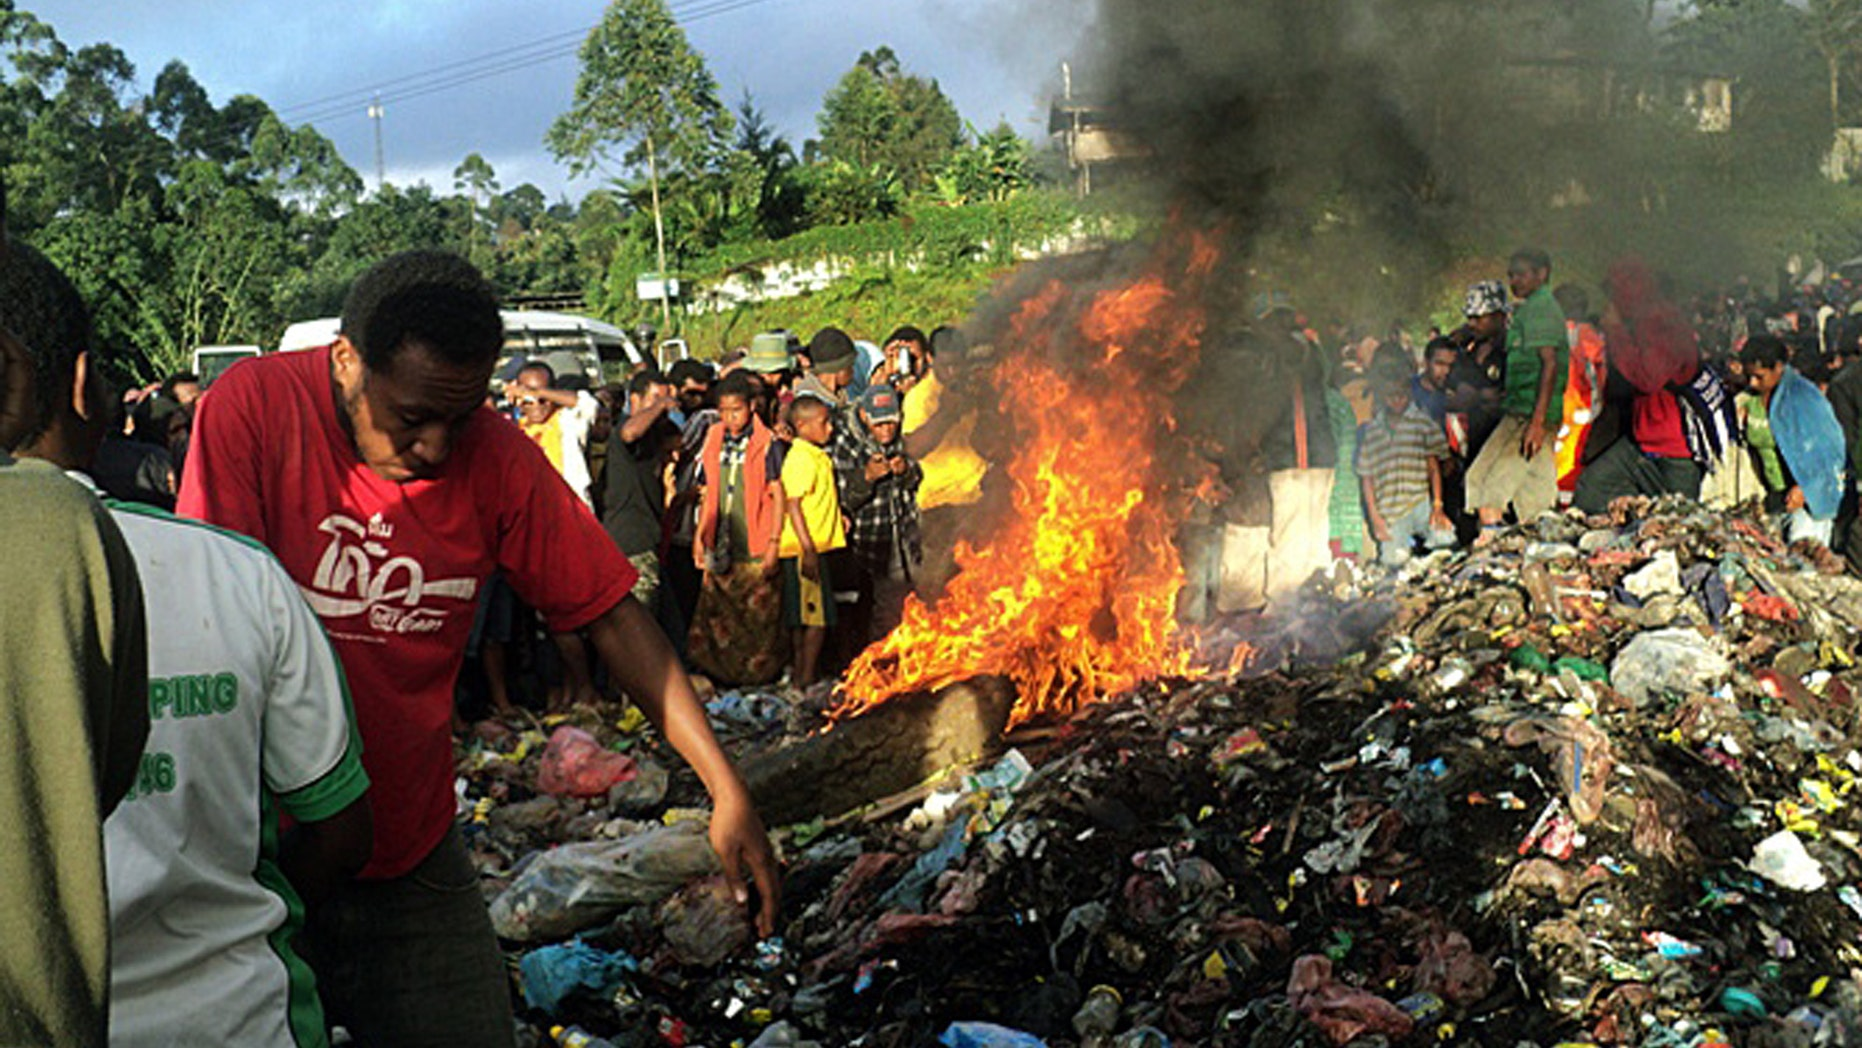 Feb. 6, 2013 - FILE photo, bystanders watch as a woman accused of witchcraft is burned alive in the Western Highlands provincial capital of Mount Hagen in Papua New Guinea.